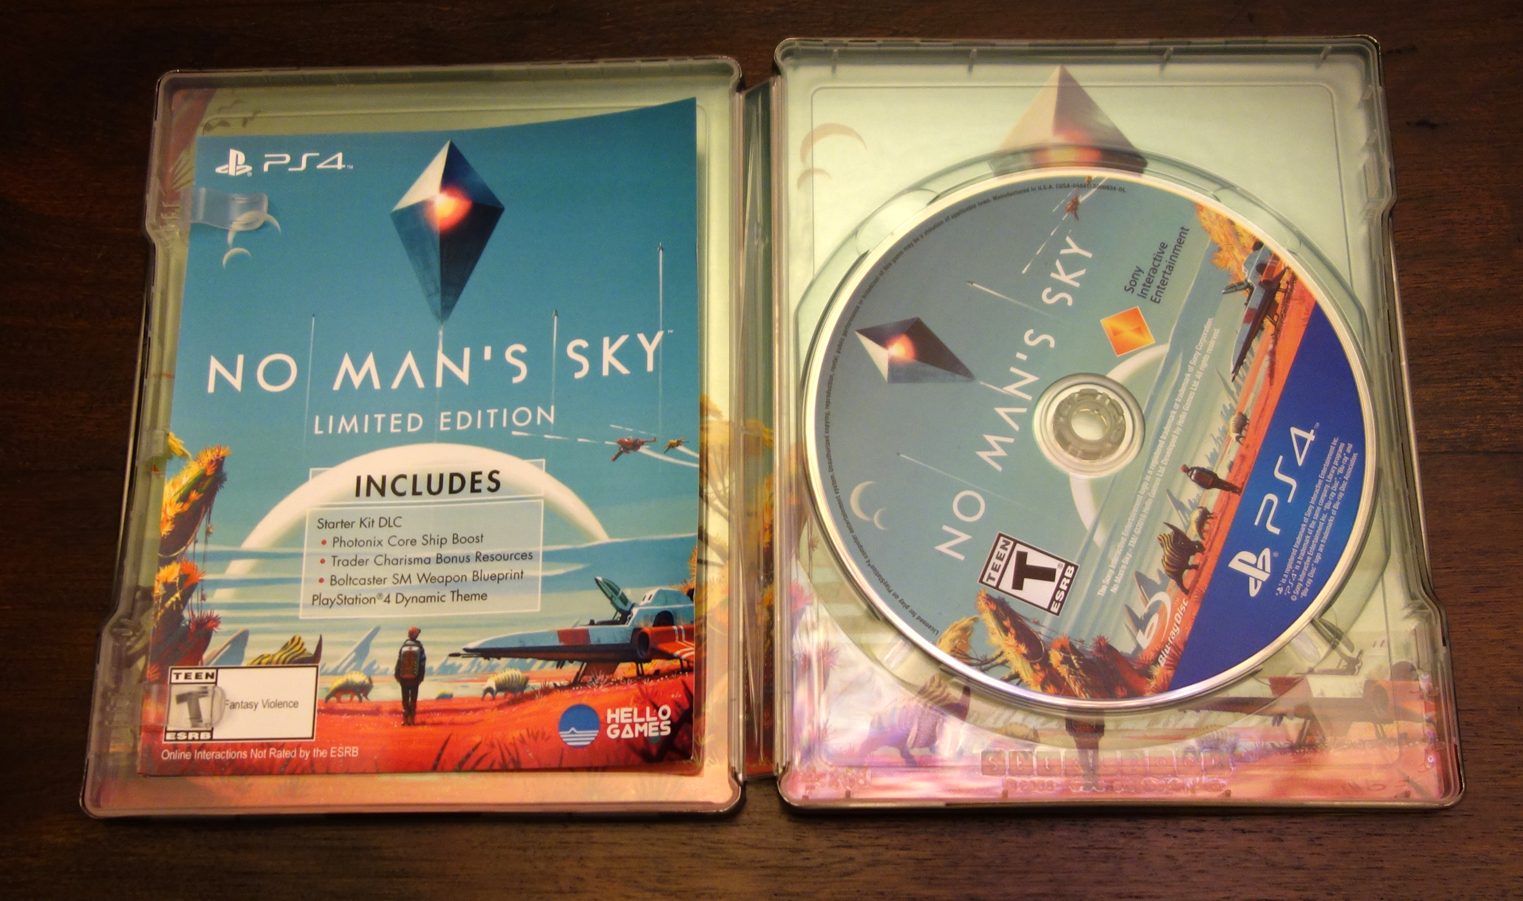 'No Man's Sky - Limited Edition PS4 steelbook, disc, and Starter Kit DLC